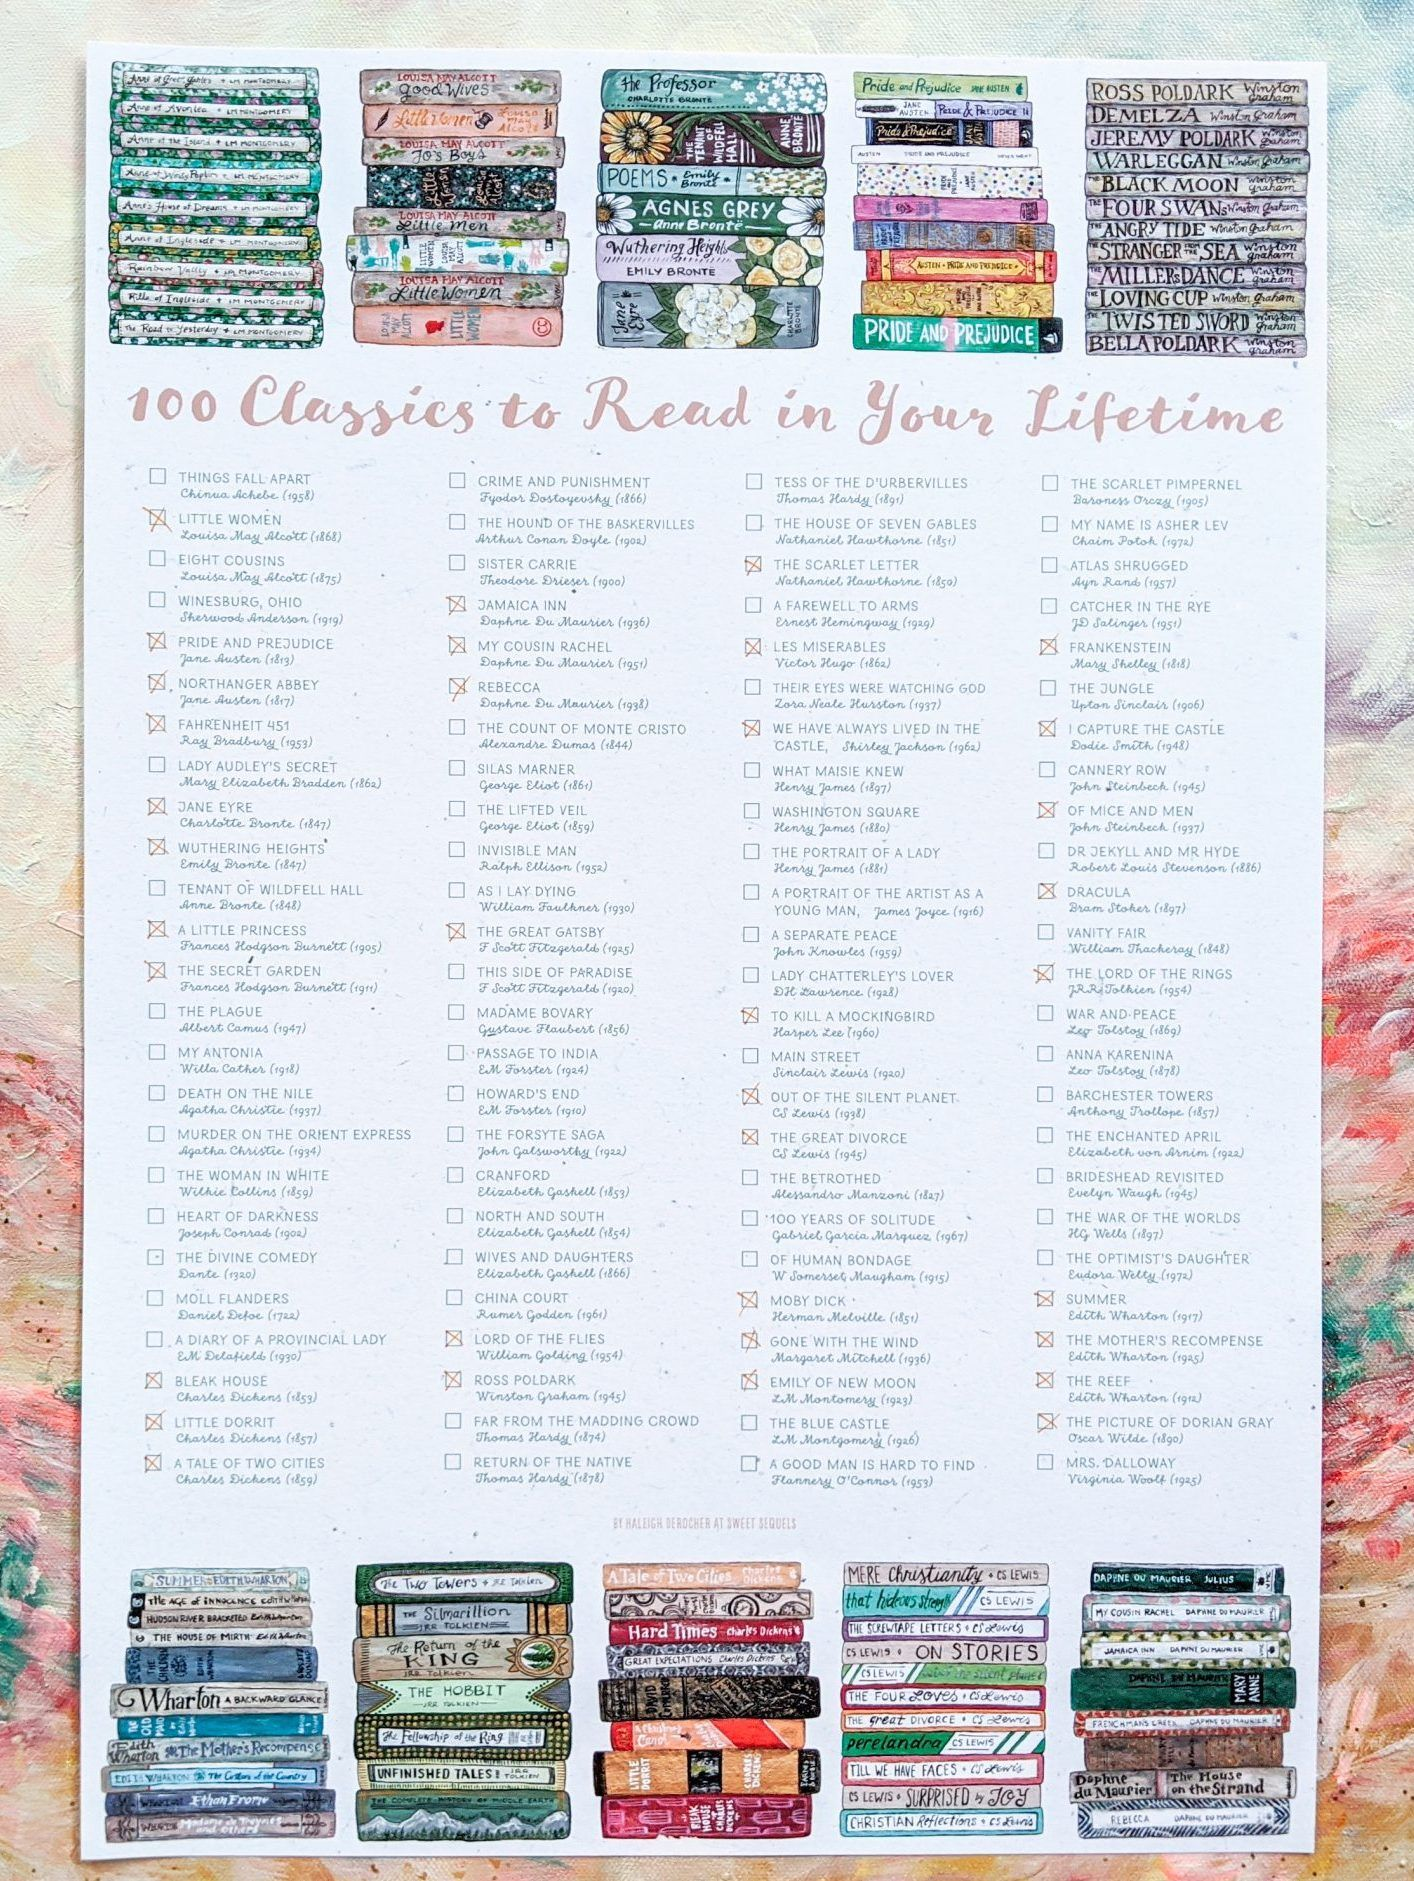 100 Classics To Read In Your Lifetime Literary Checklist Poster Sweet Sequels In 2020 Classics To Read Classic Literature Books 100 Books To Read